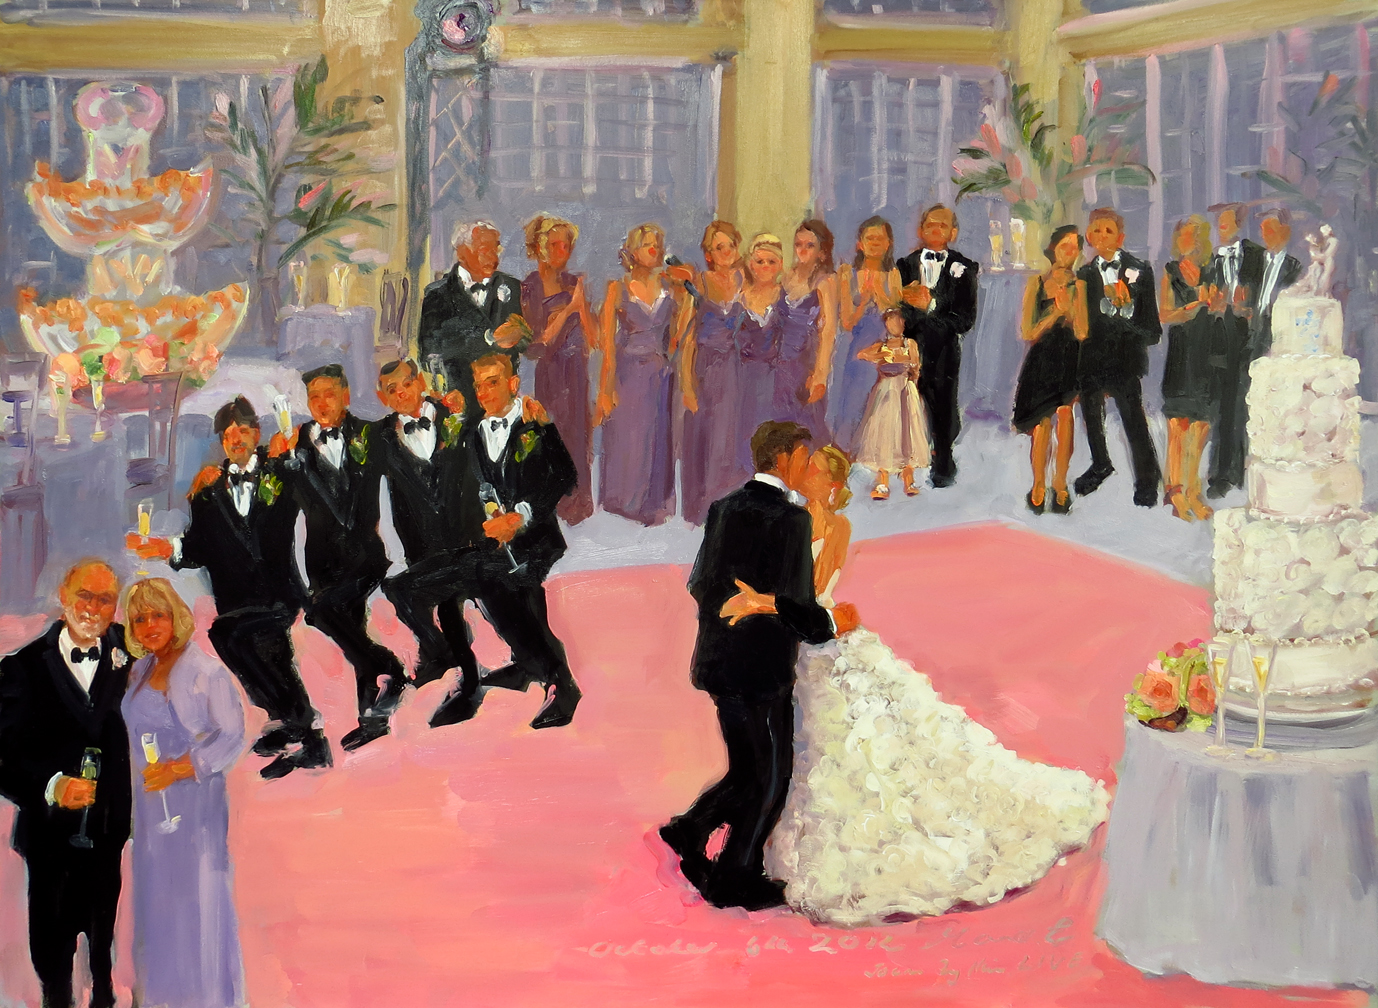 live event artist paints live at weddings joan the event